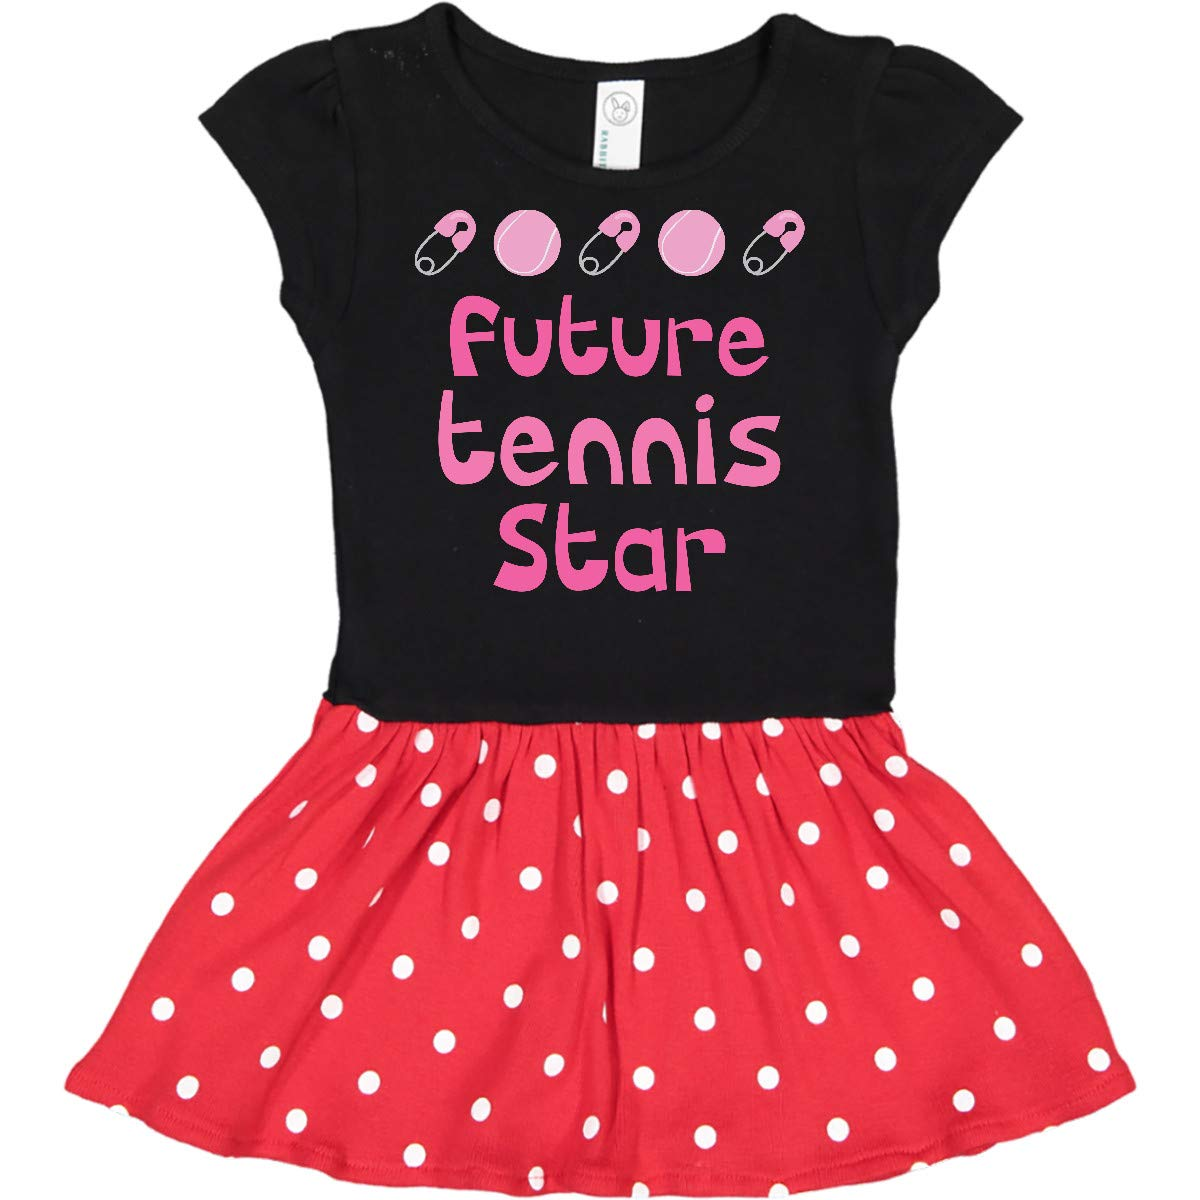 88fa3e608 Amazon.com: inktastic - Future Tennis Star Baby Girl Infant Dress f7c7:  Clothing